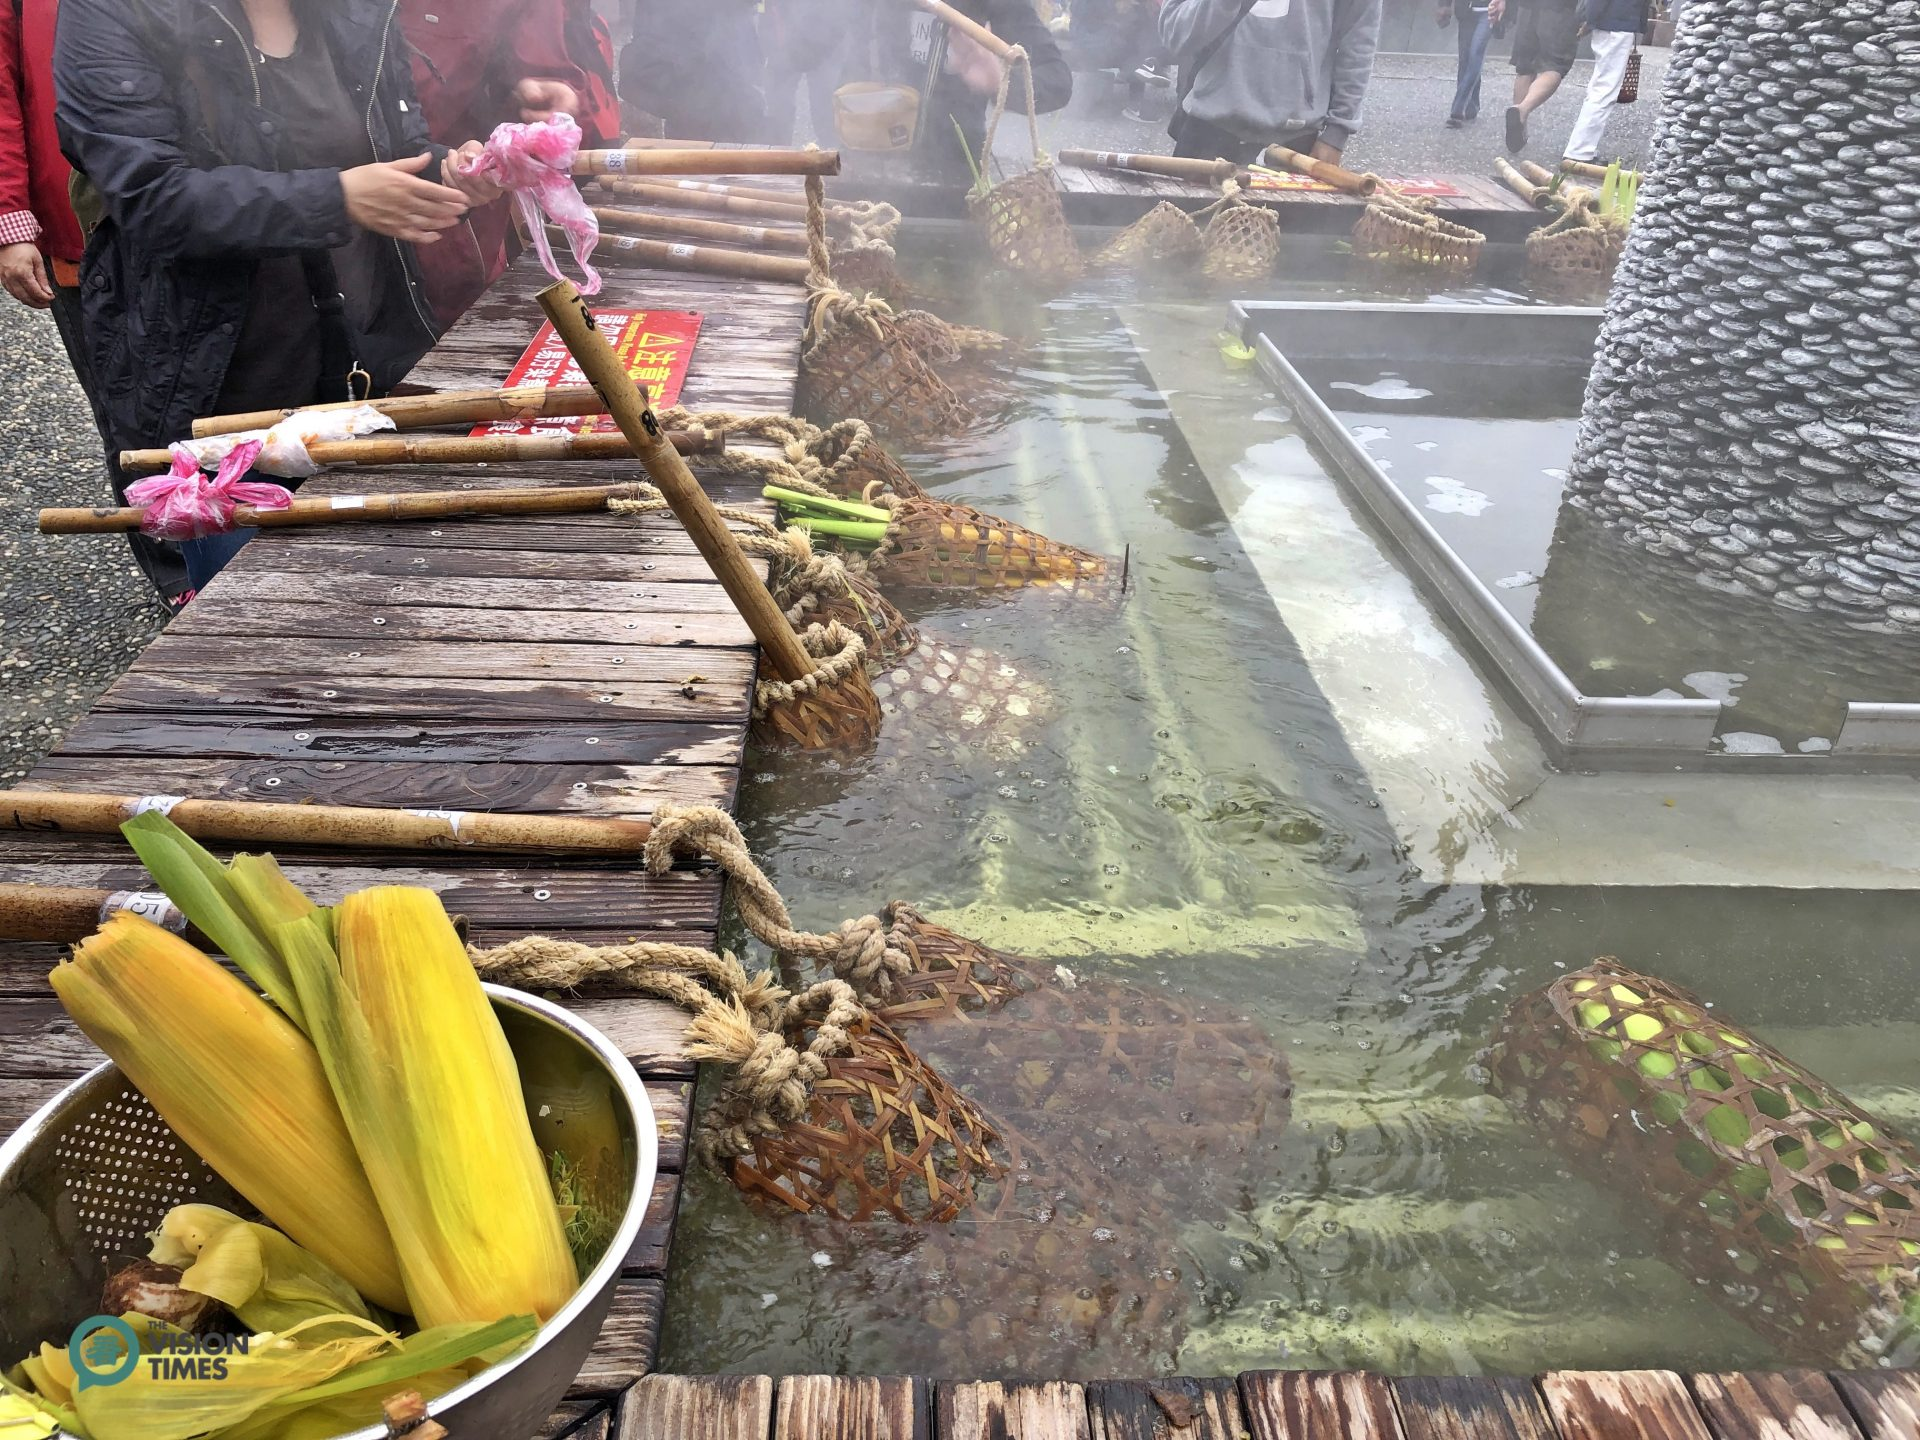 Visitors can cook a variety of food in hot spring water at Qingshui Geothermal Park. (Image: Billy Shyu / Vision Times)